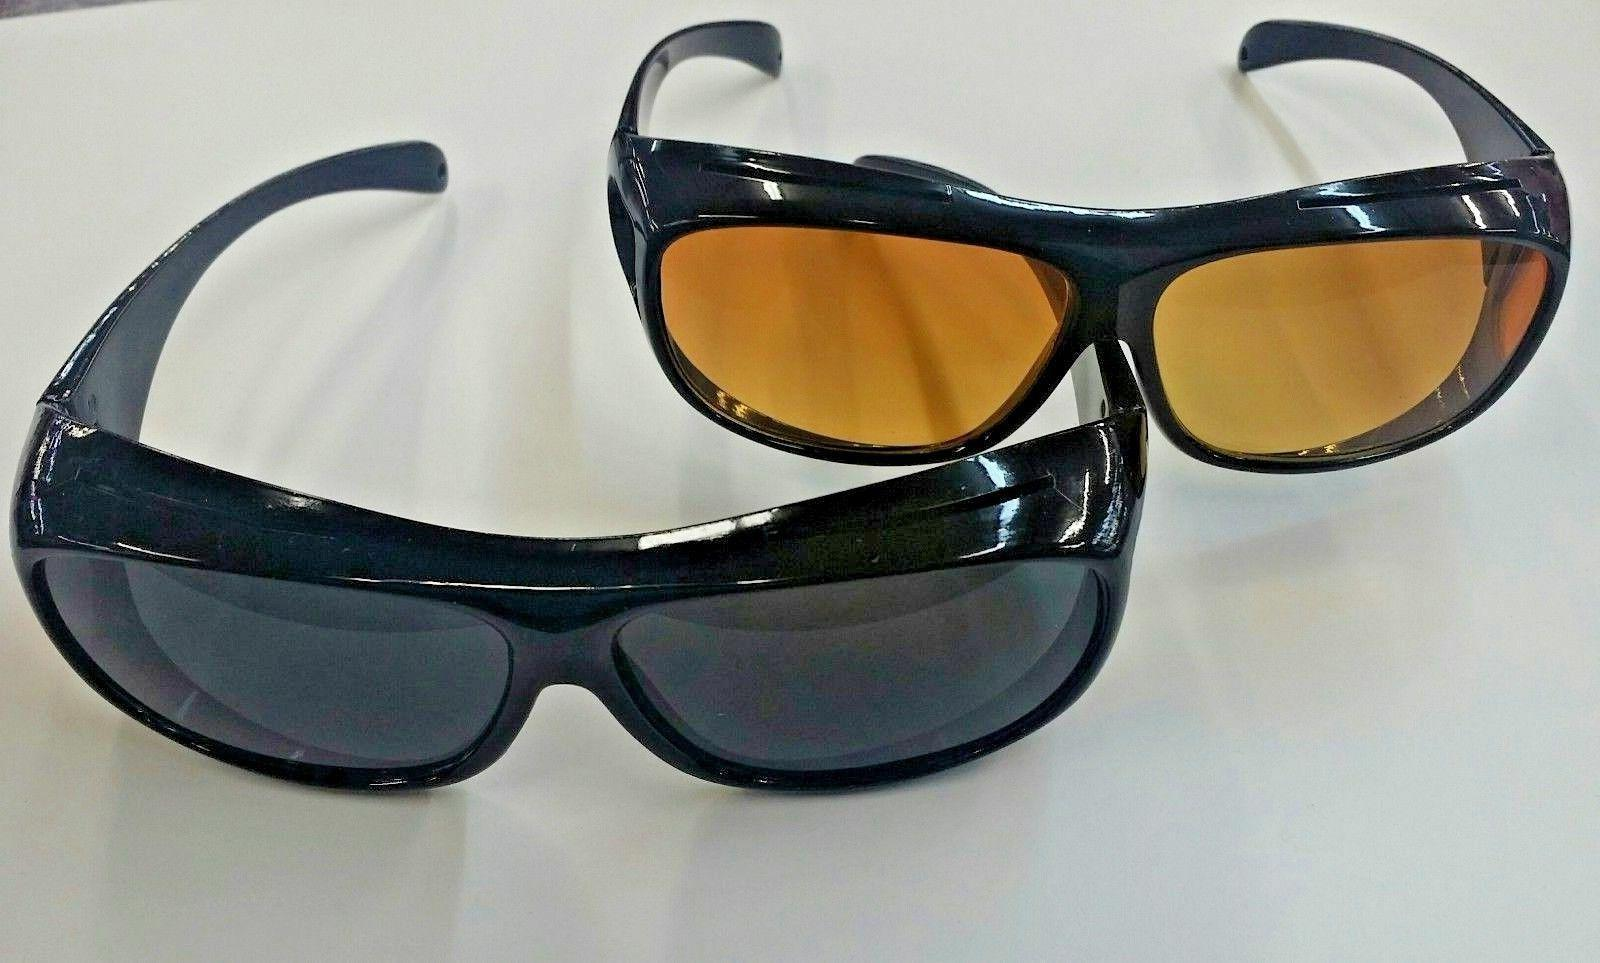 2 Pair As Seen on Fits Glasses